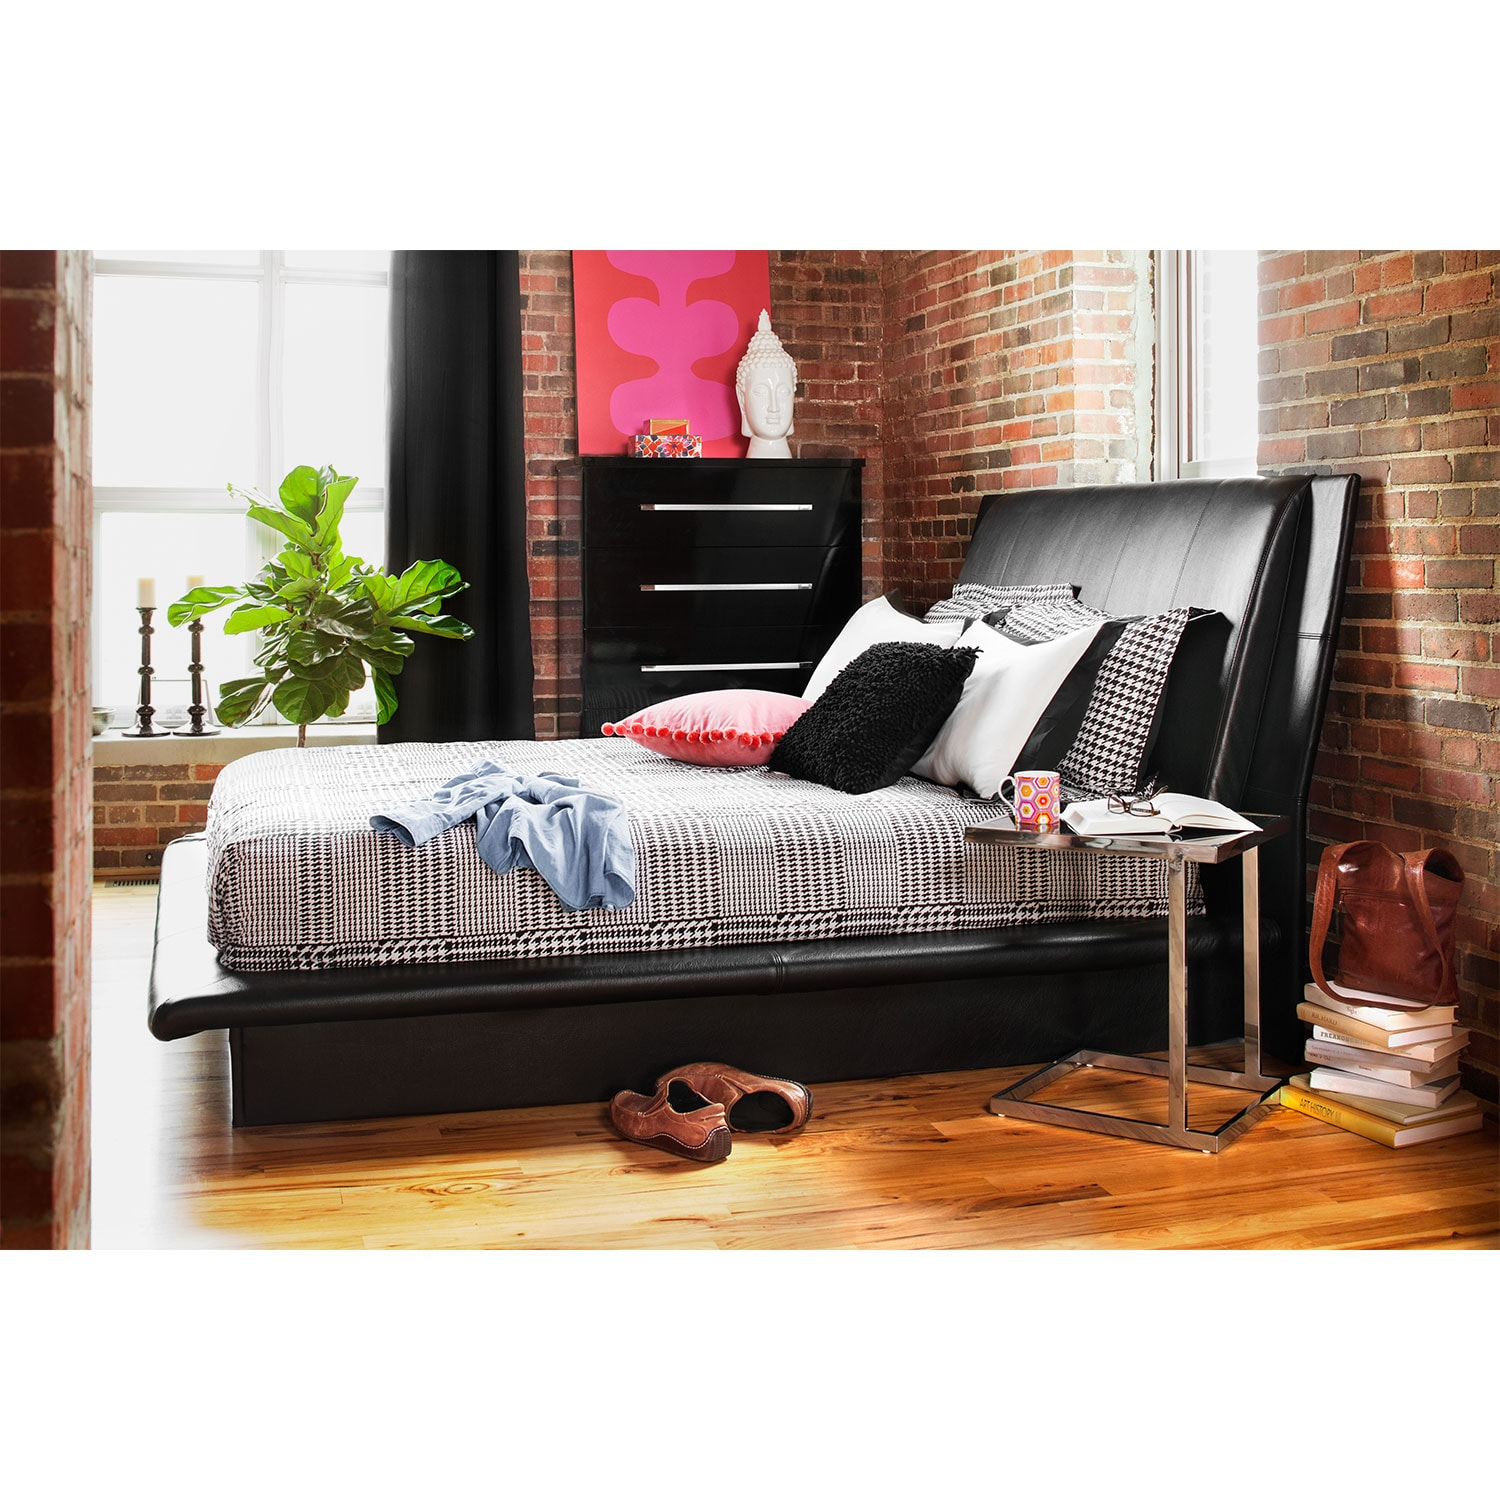 Dimora Queen Upholstered Bed Black American Signature